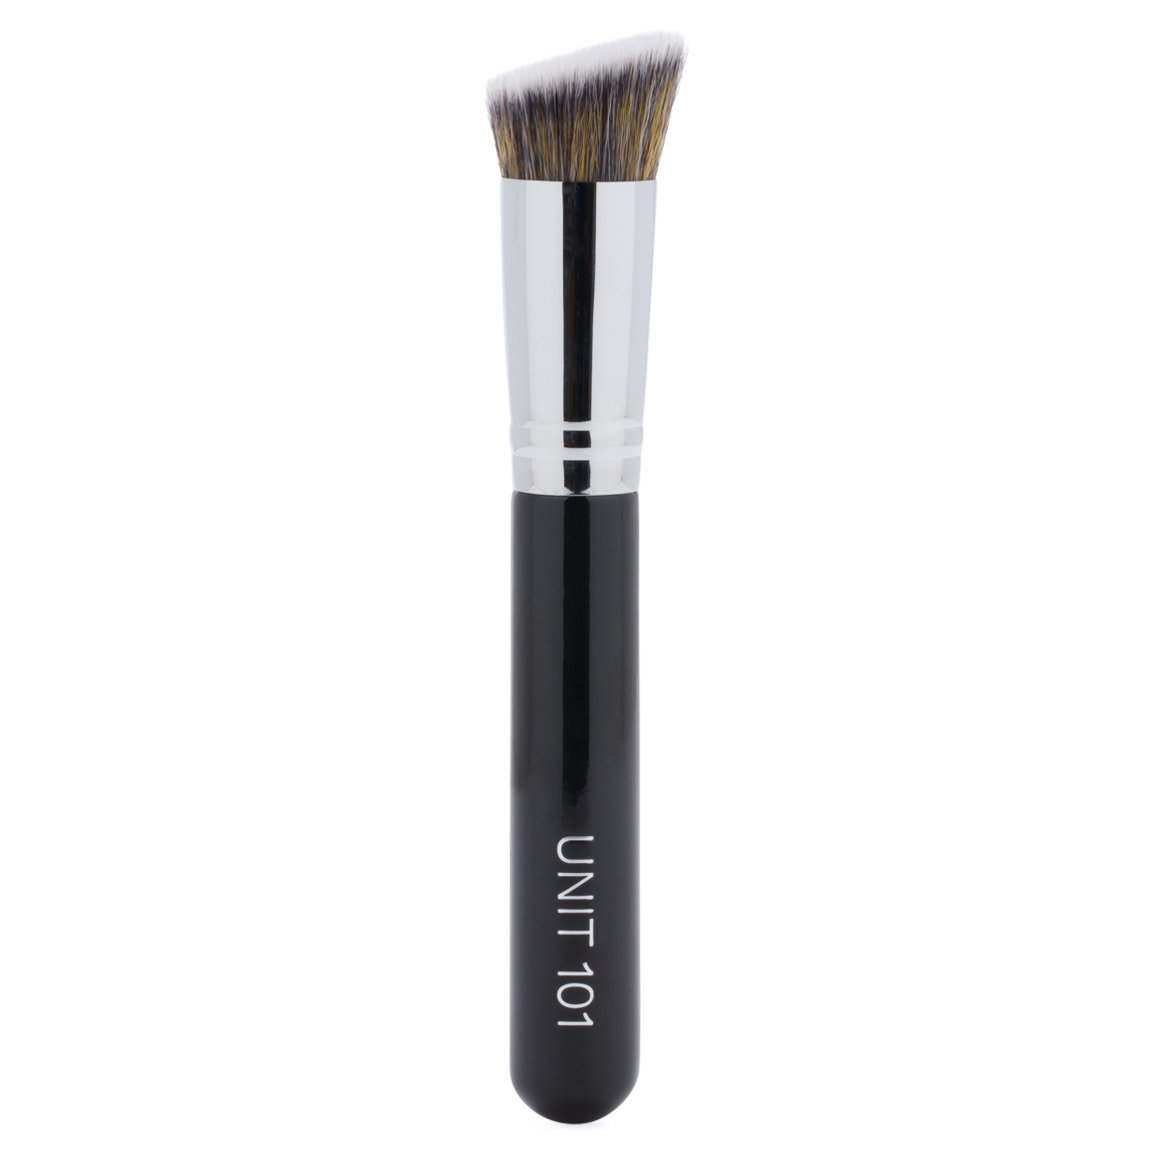 UNITS UNIT 101 Foundation Brush alternative view 1 - product swatch.